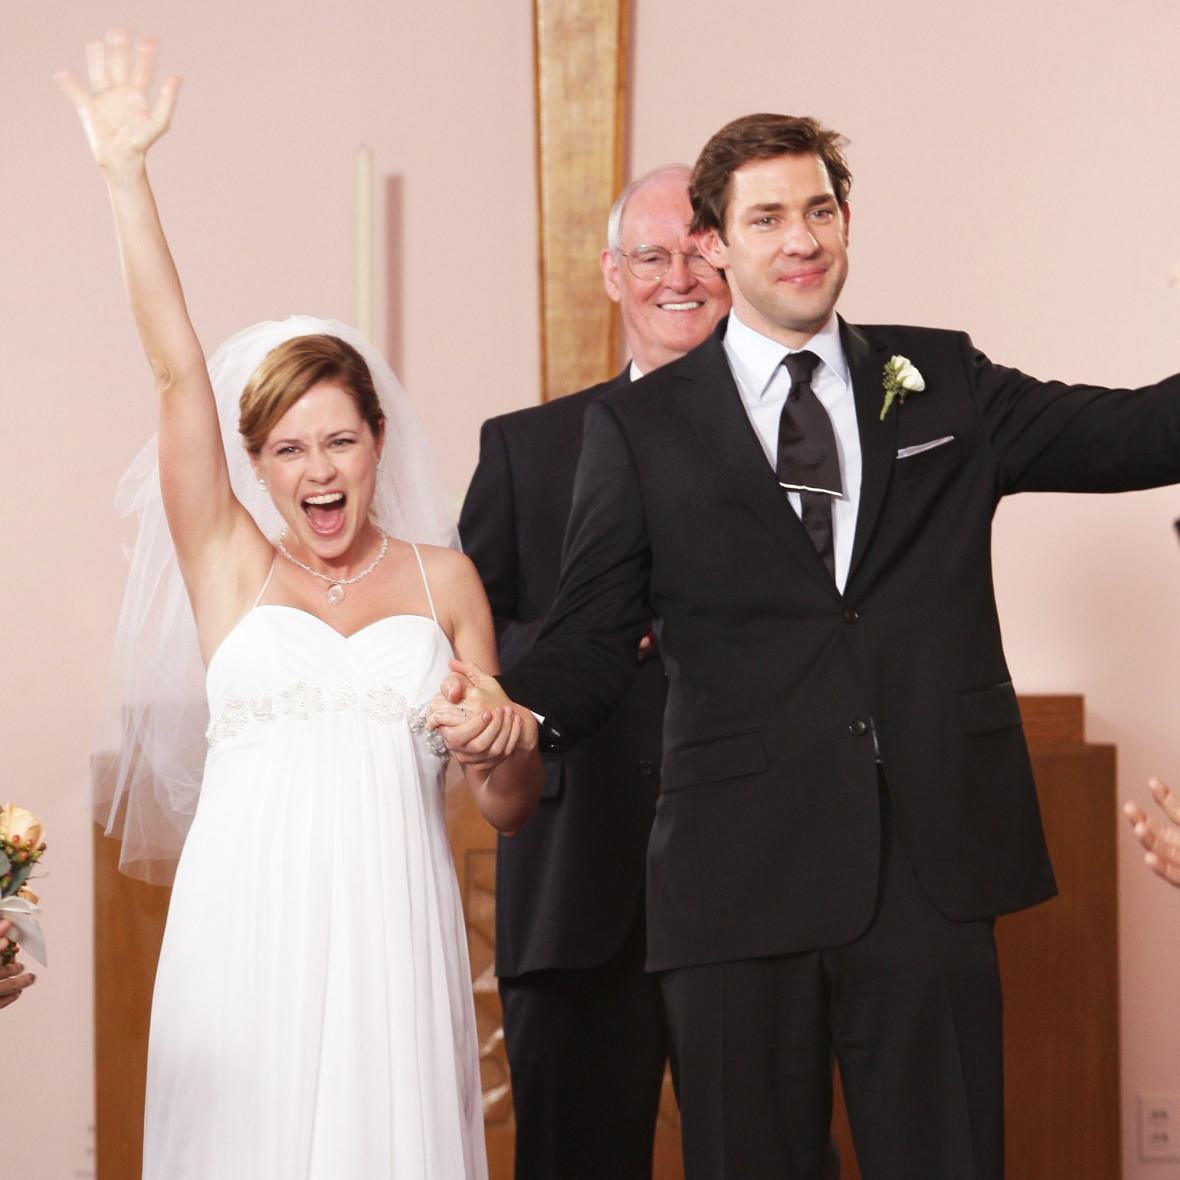 jenna fischer 'the office' getty images